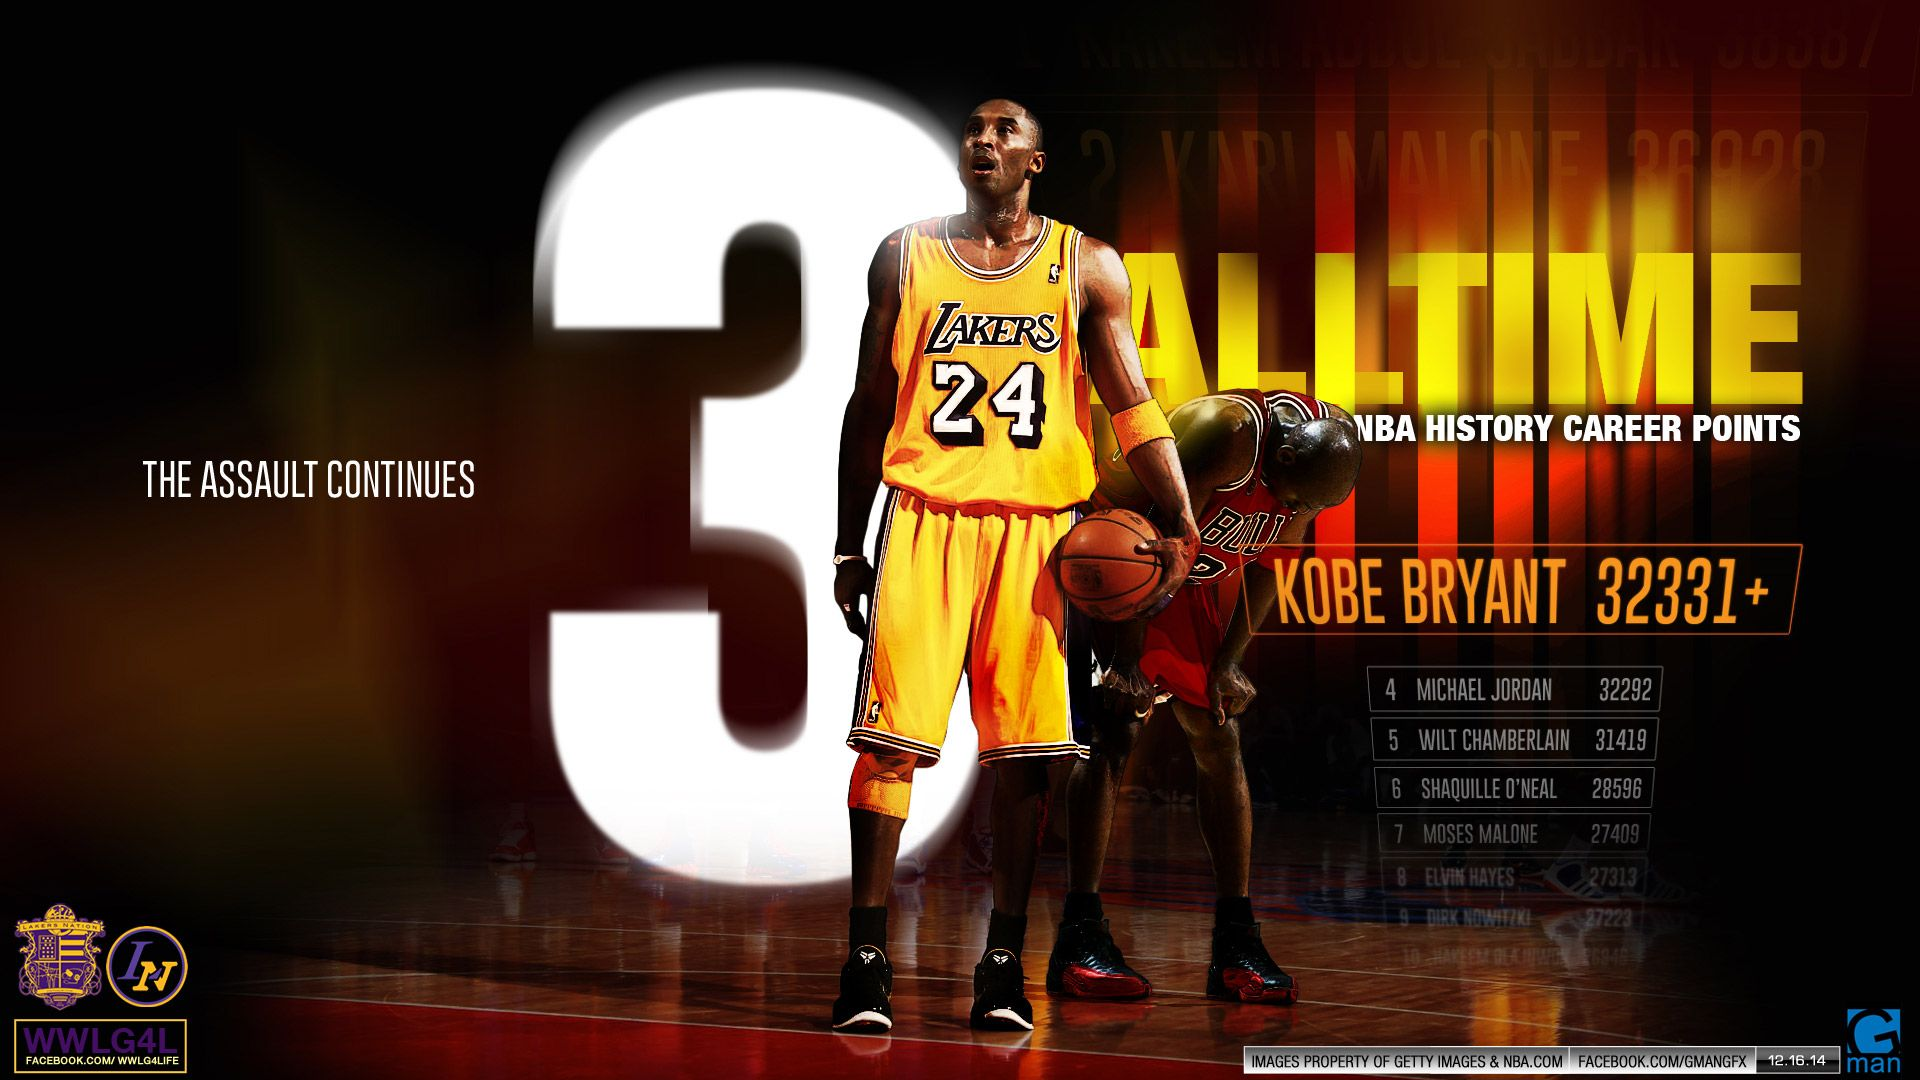 Kobe bryant wallpapers basketball wallpapers at wallpapers kobe bryant wallpapers basketball wallpapers at voltagebd Image collections